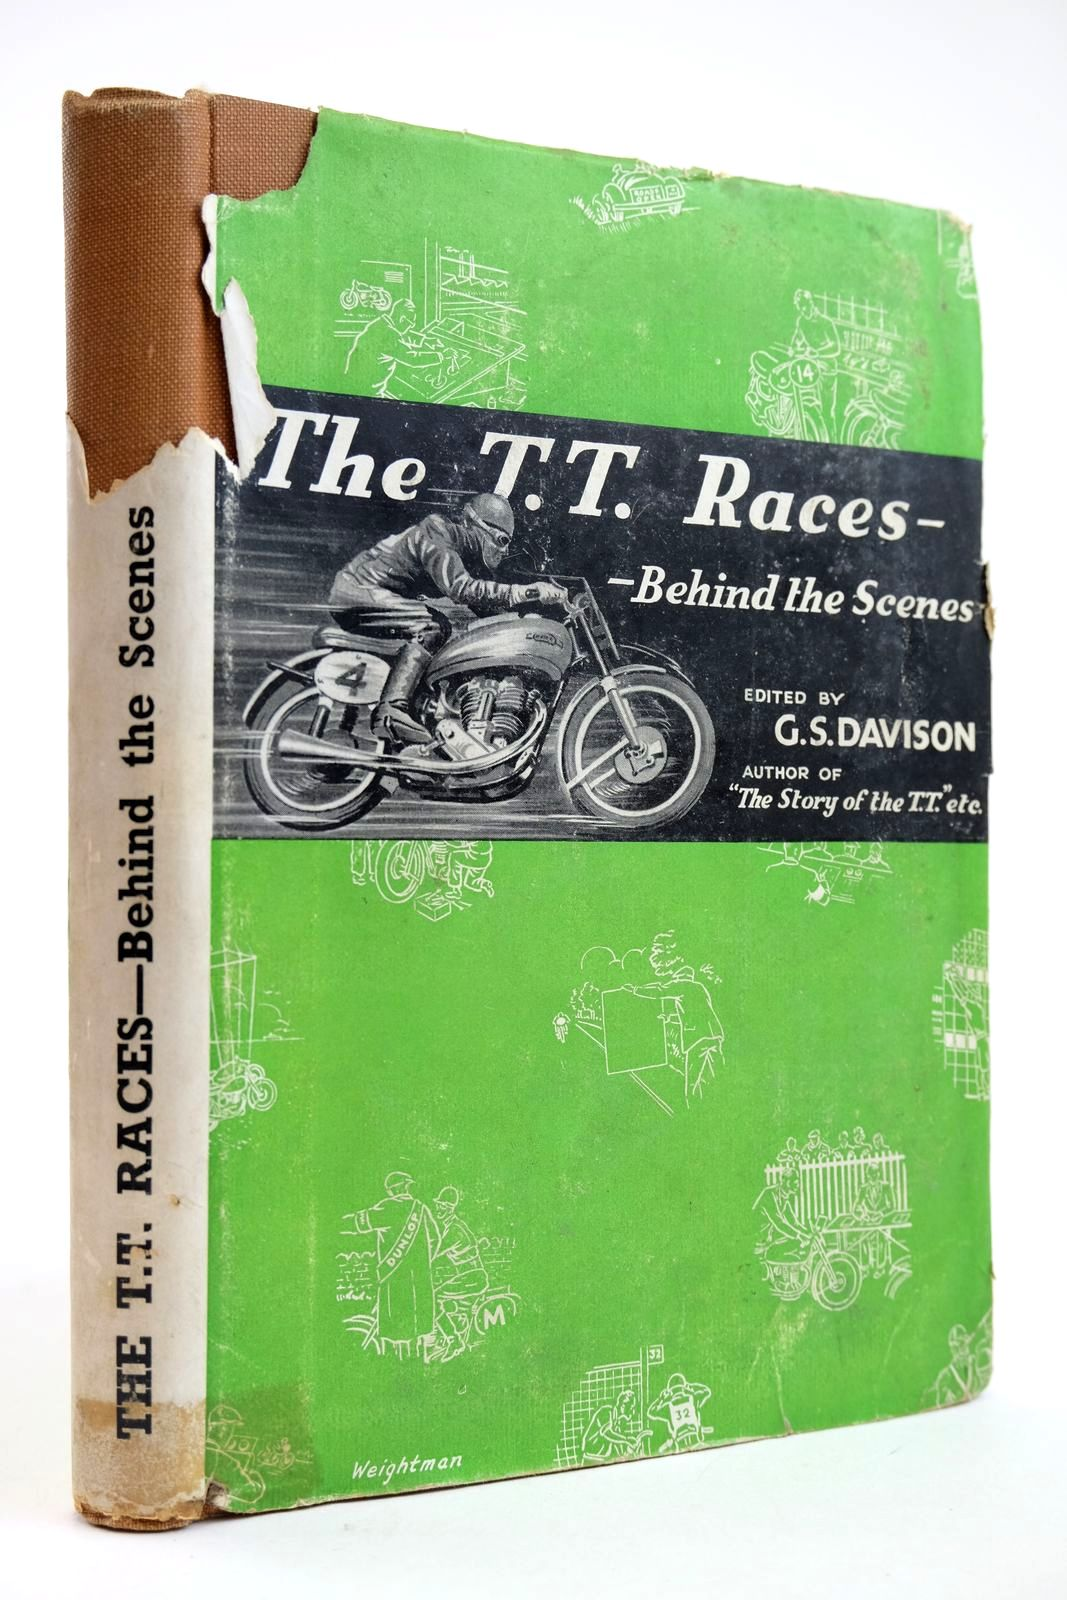 Photo of THE T.T. RACES - BEHIND THE SCENES written by Davison, G.S. published by The T.T. Special (STOCK CODE: 2132279)  for sale by Stella & Rose's Books